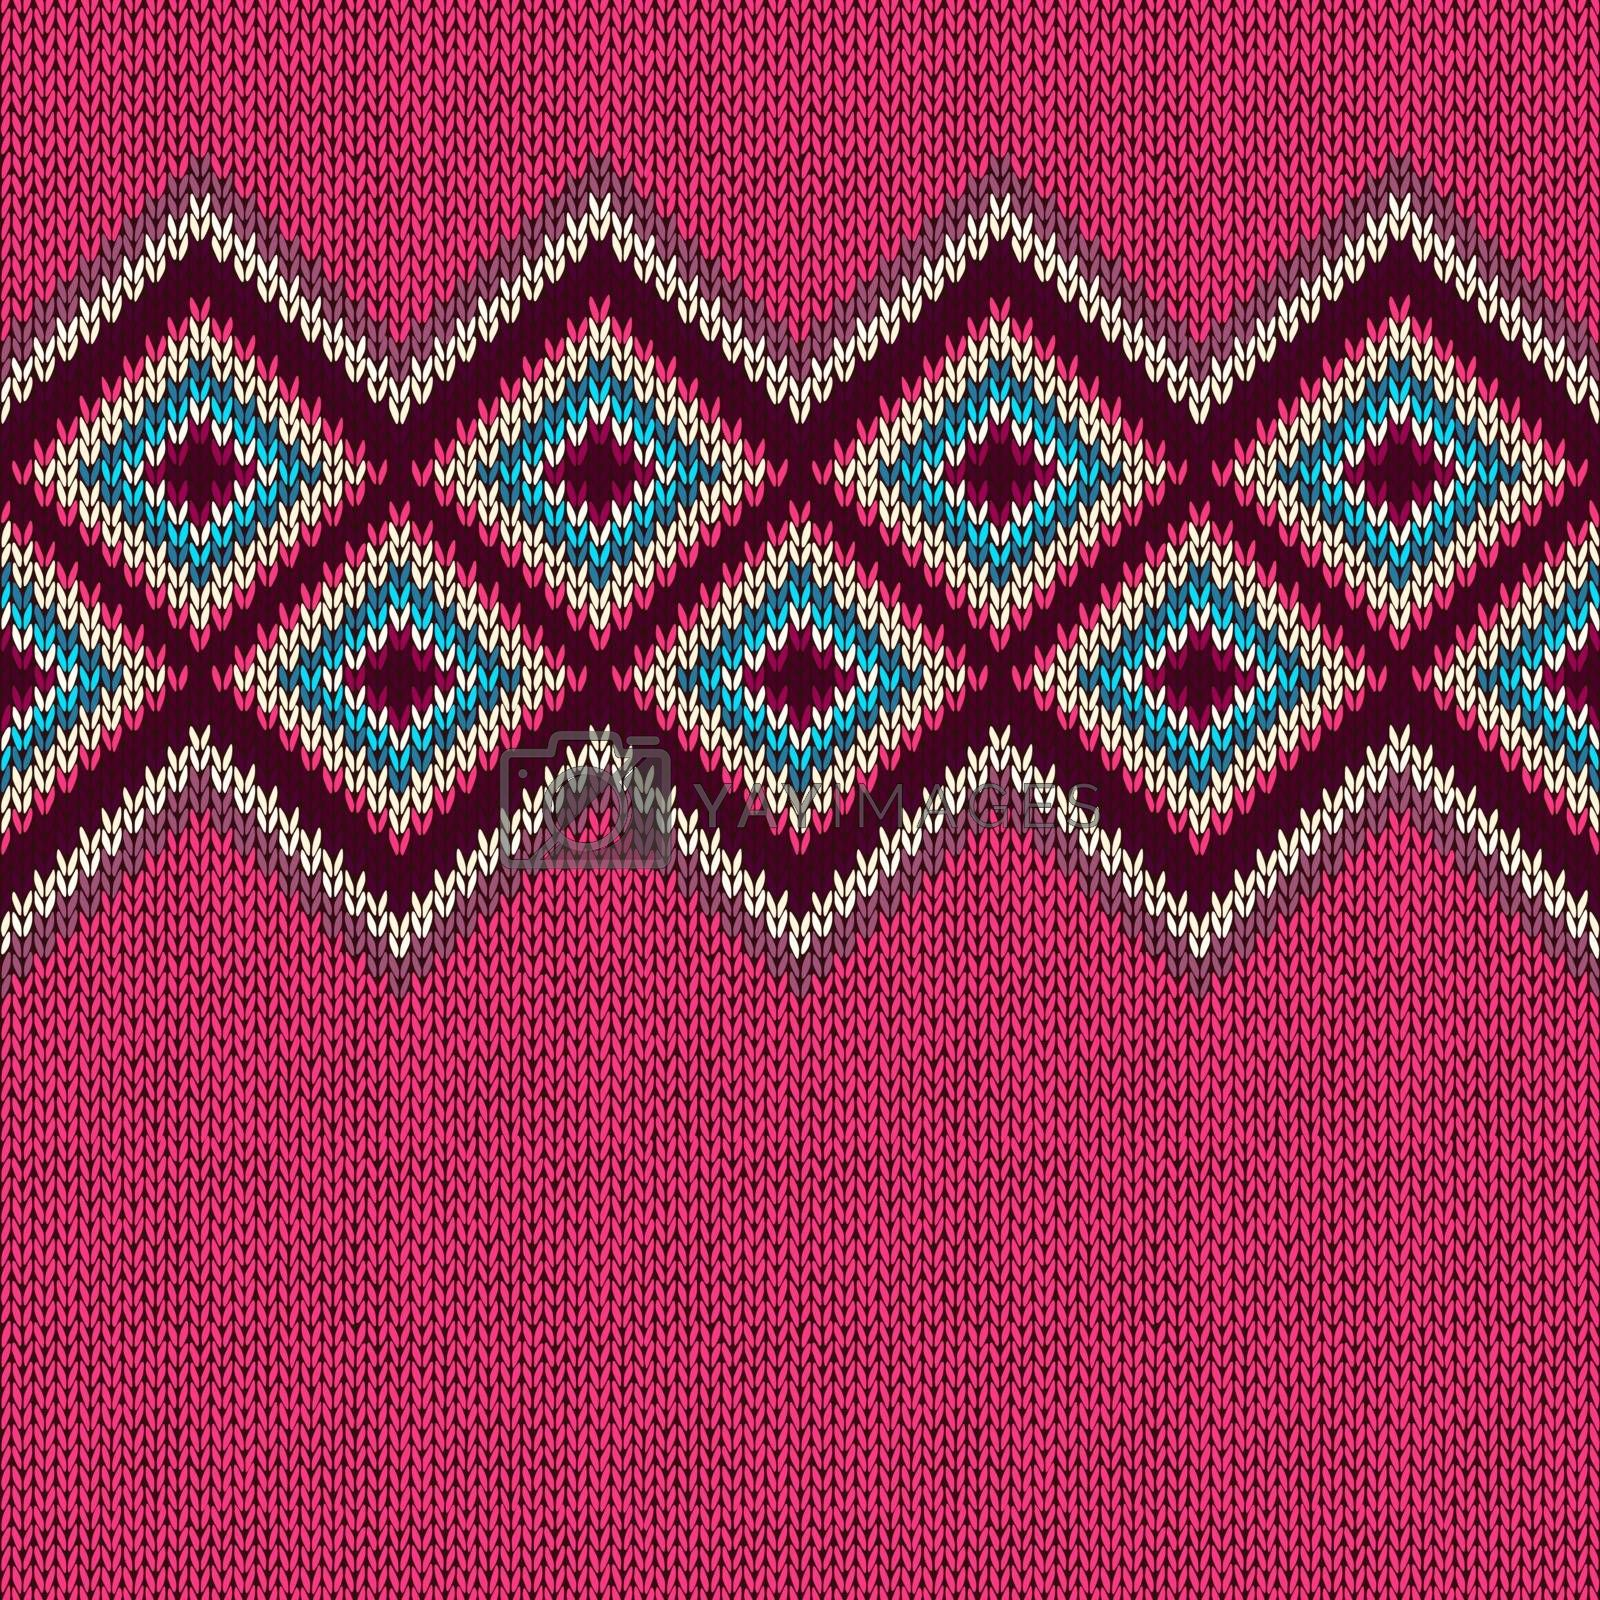 Seamless knitted pattern with rhombus. Decorative ornament. Geometric background with textile texture